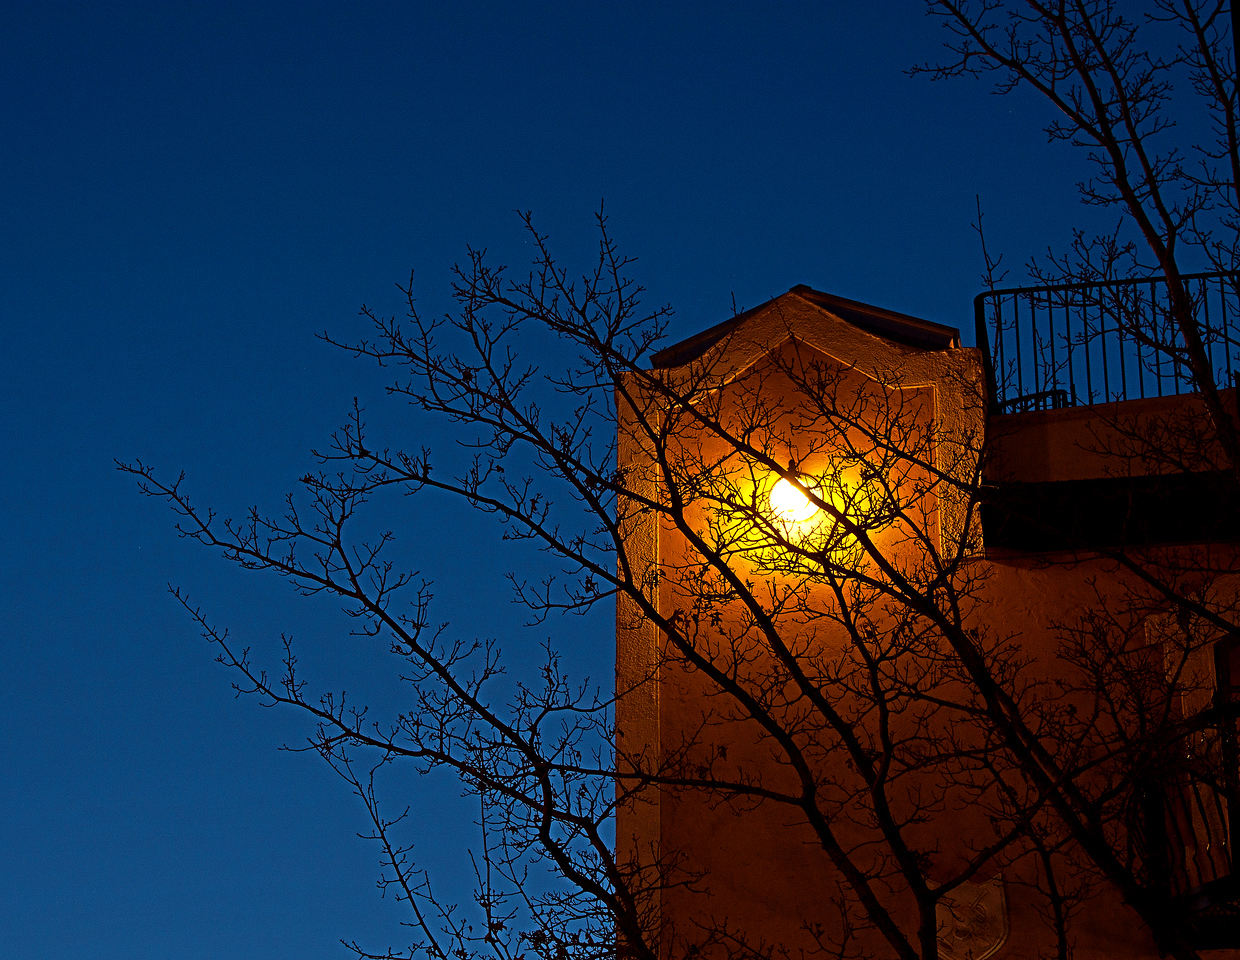 Twilight trees on a building in downtown Bend, Oregon